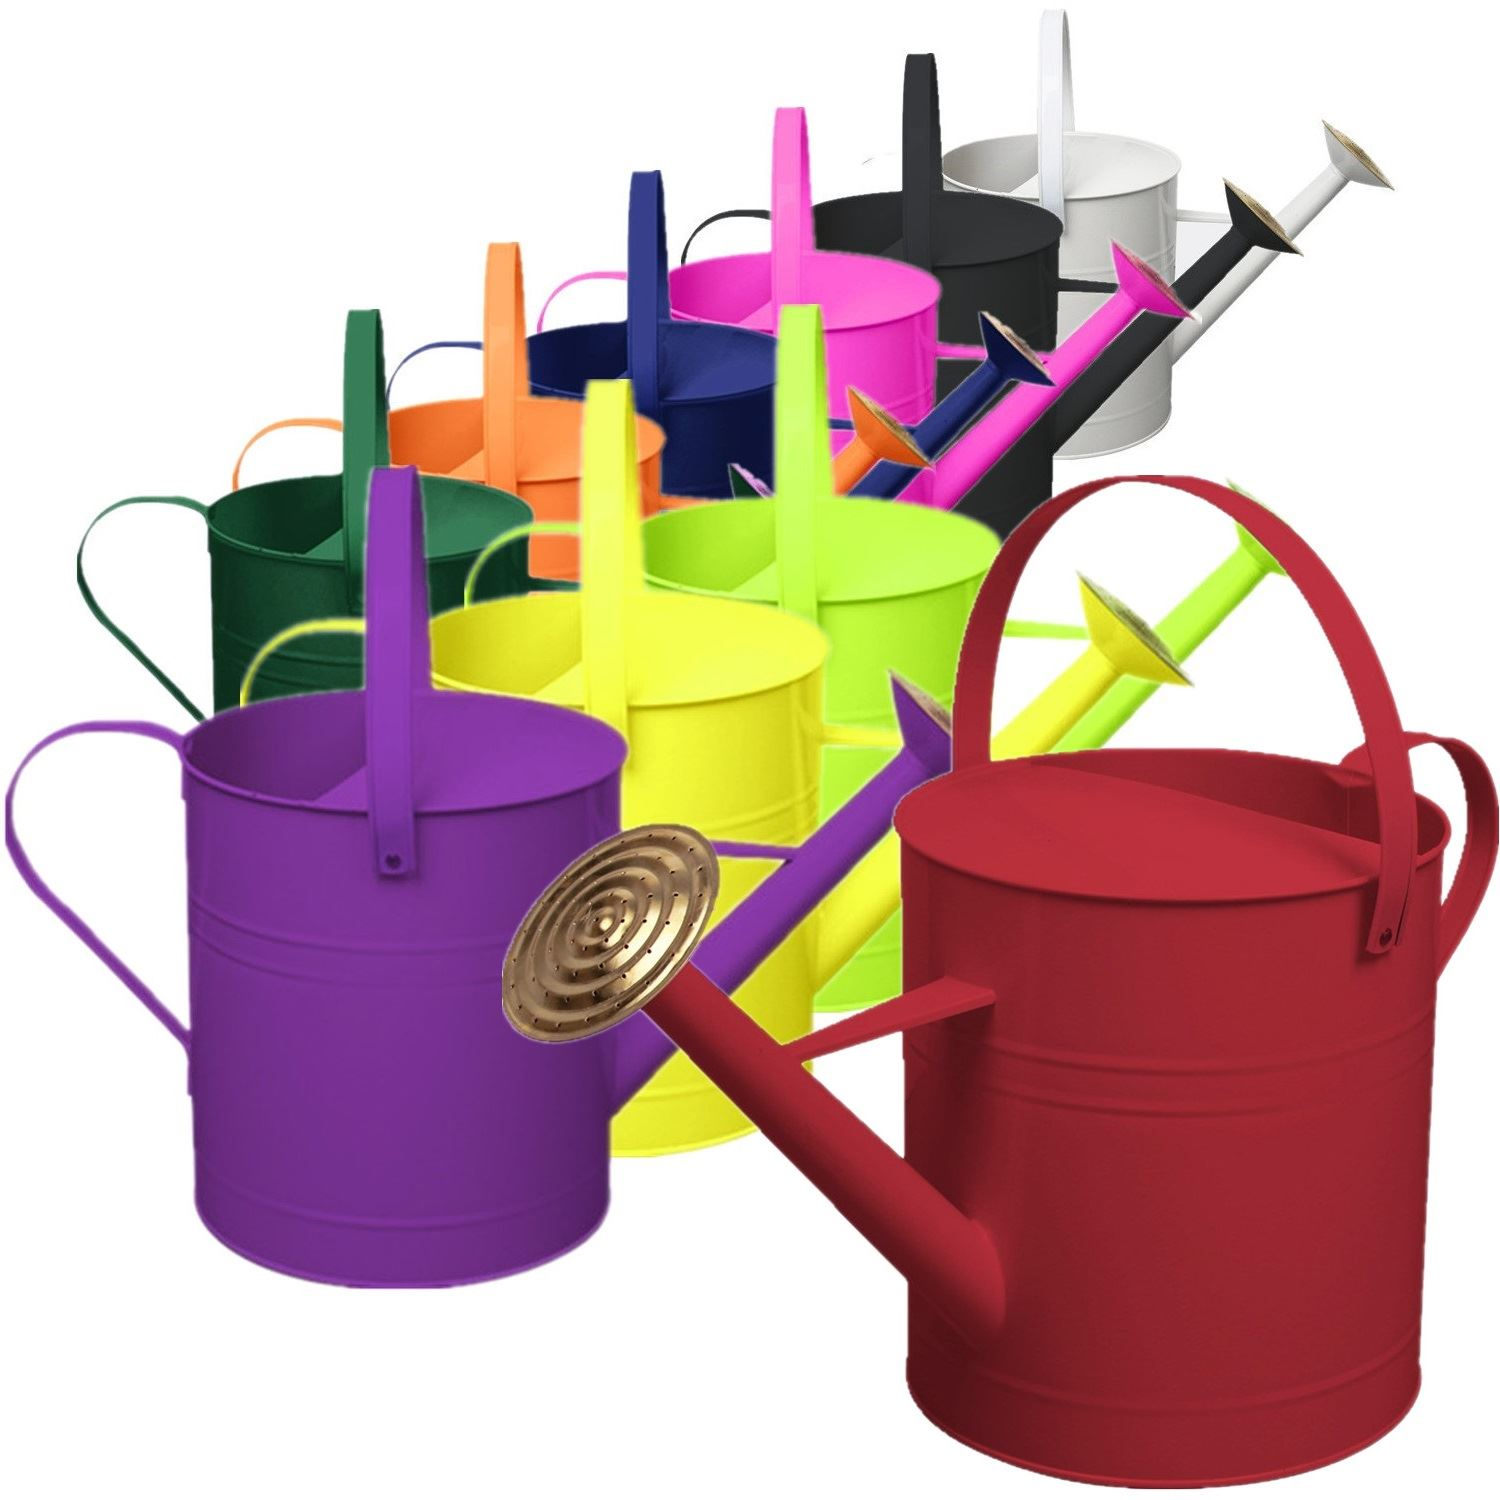 Plant Watering Cans Garden Plant Colour Galvanised Metal Steel Watering Can 9